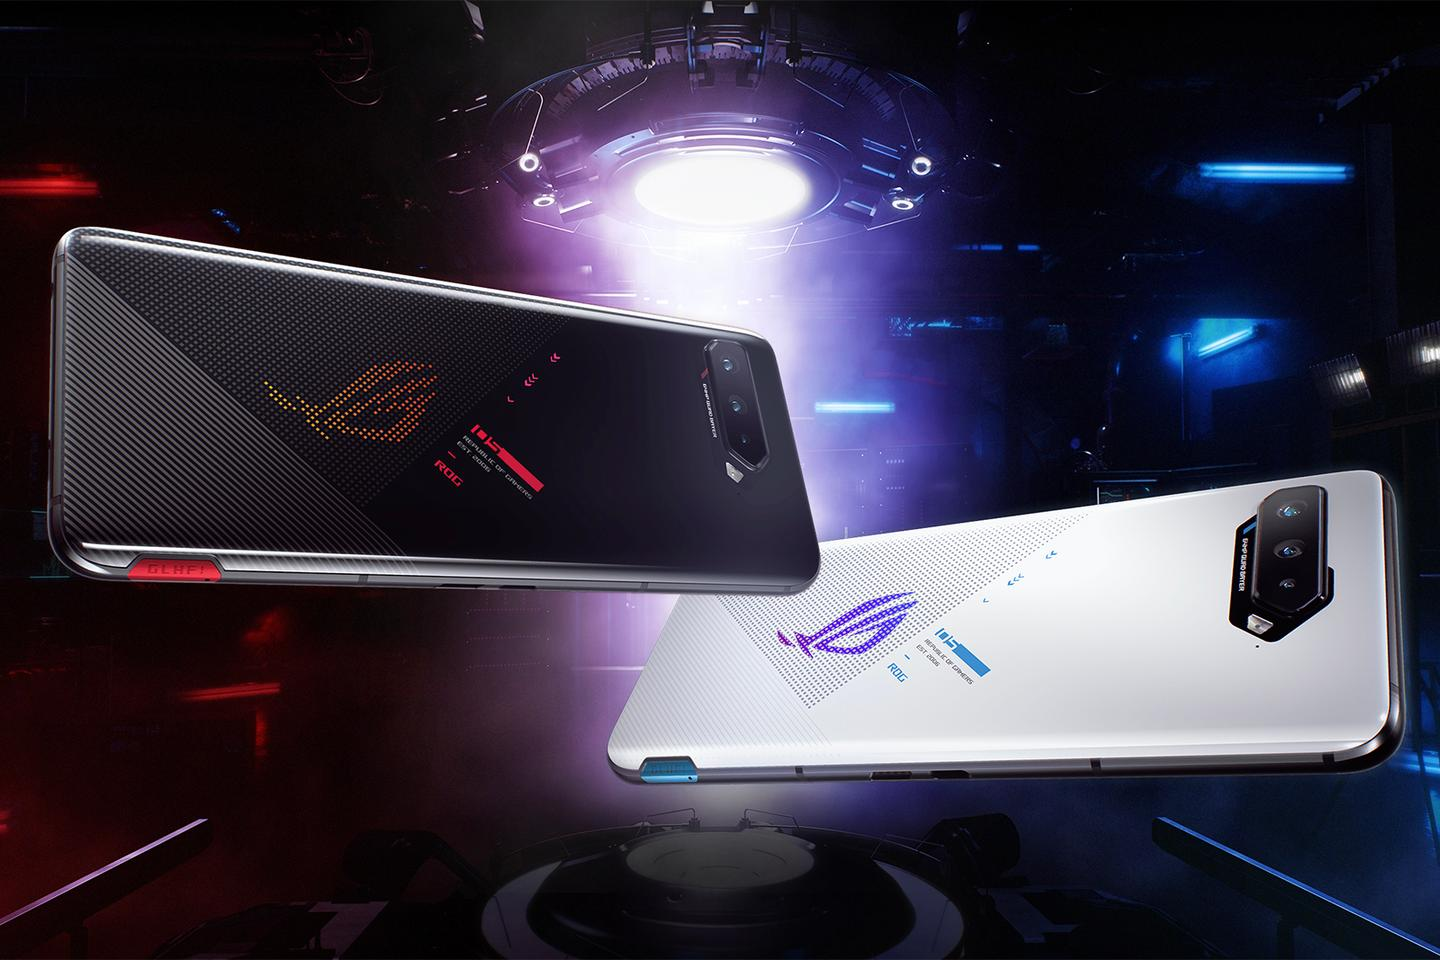 The Pro and Ultimate editions of the ROG Phone 5 come with an LED display on the back